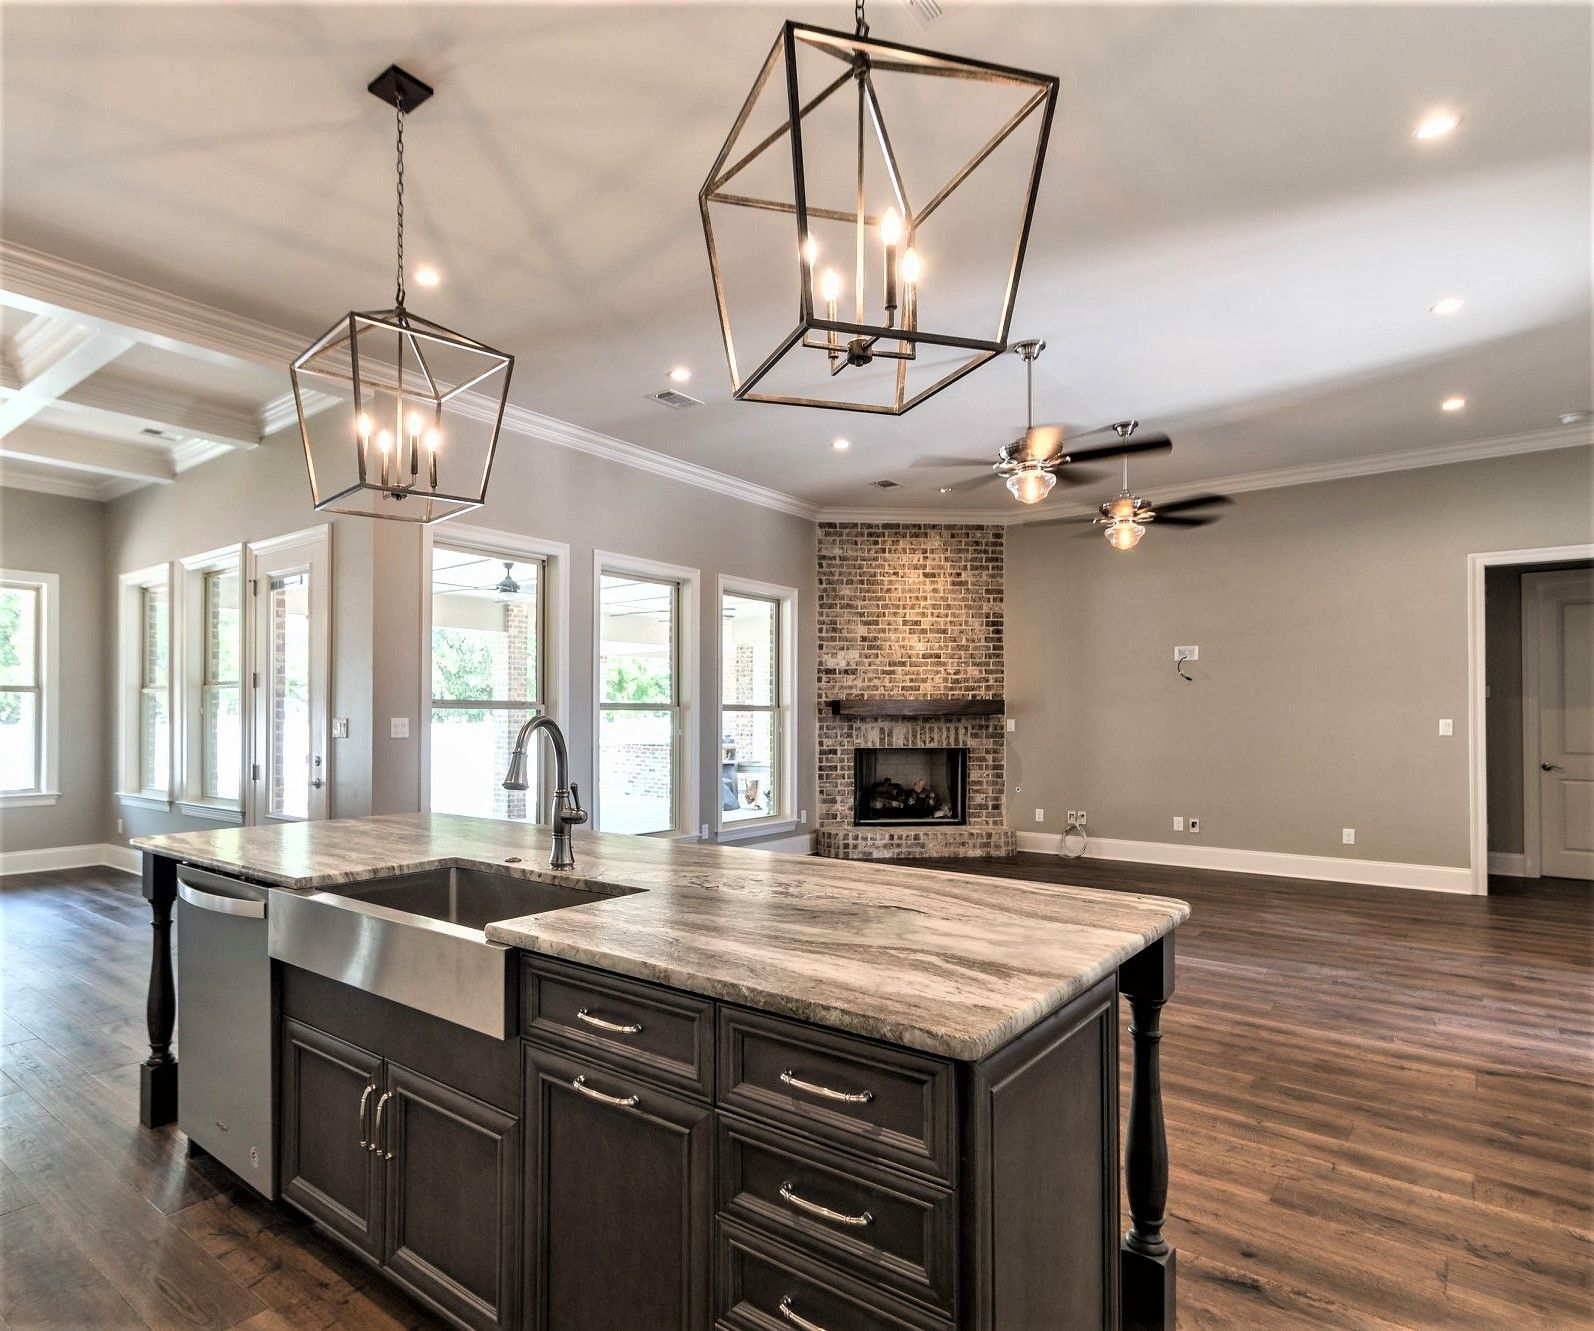 A Gorgeous Open Concept Kitchen With Leathered Cafe Latte Countertops Installed By Stone Interiors New Orl Affordable Countertops Countertops Countertop Prices